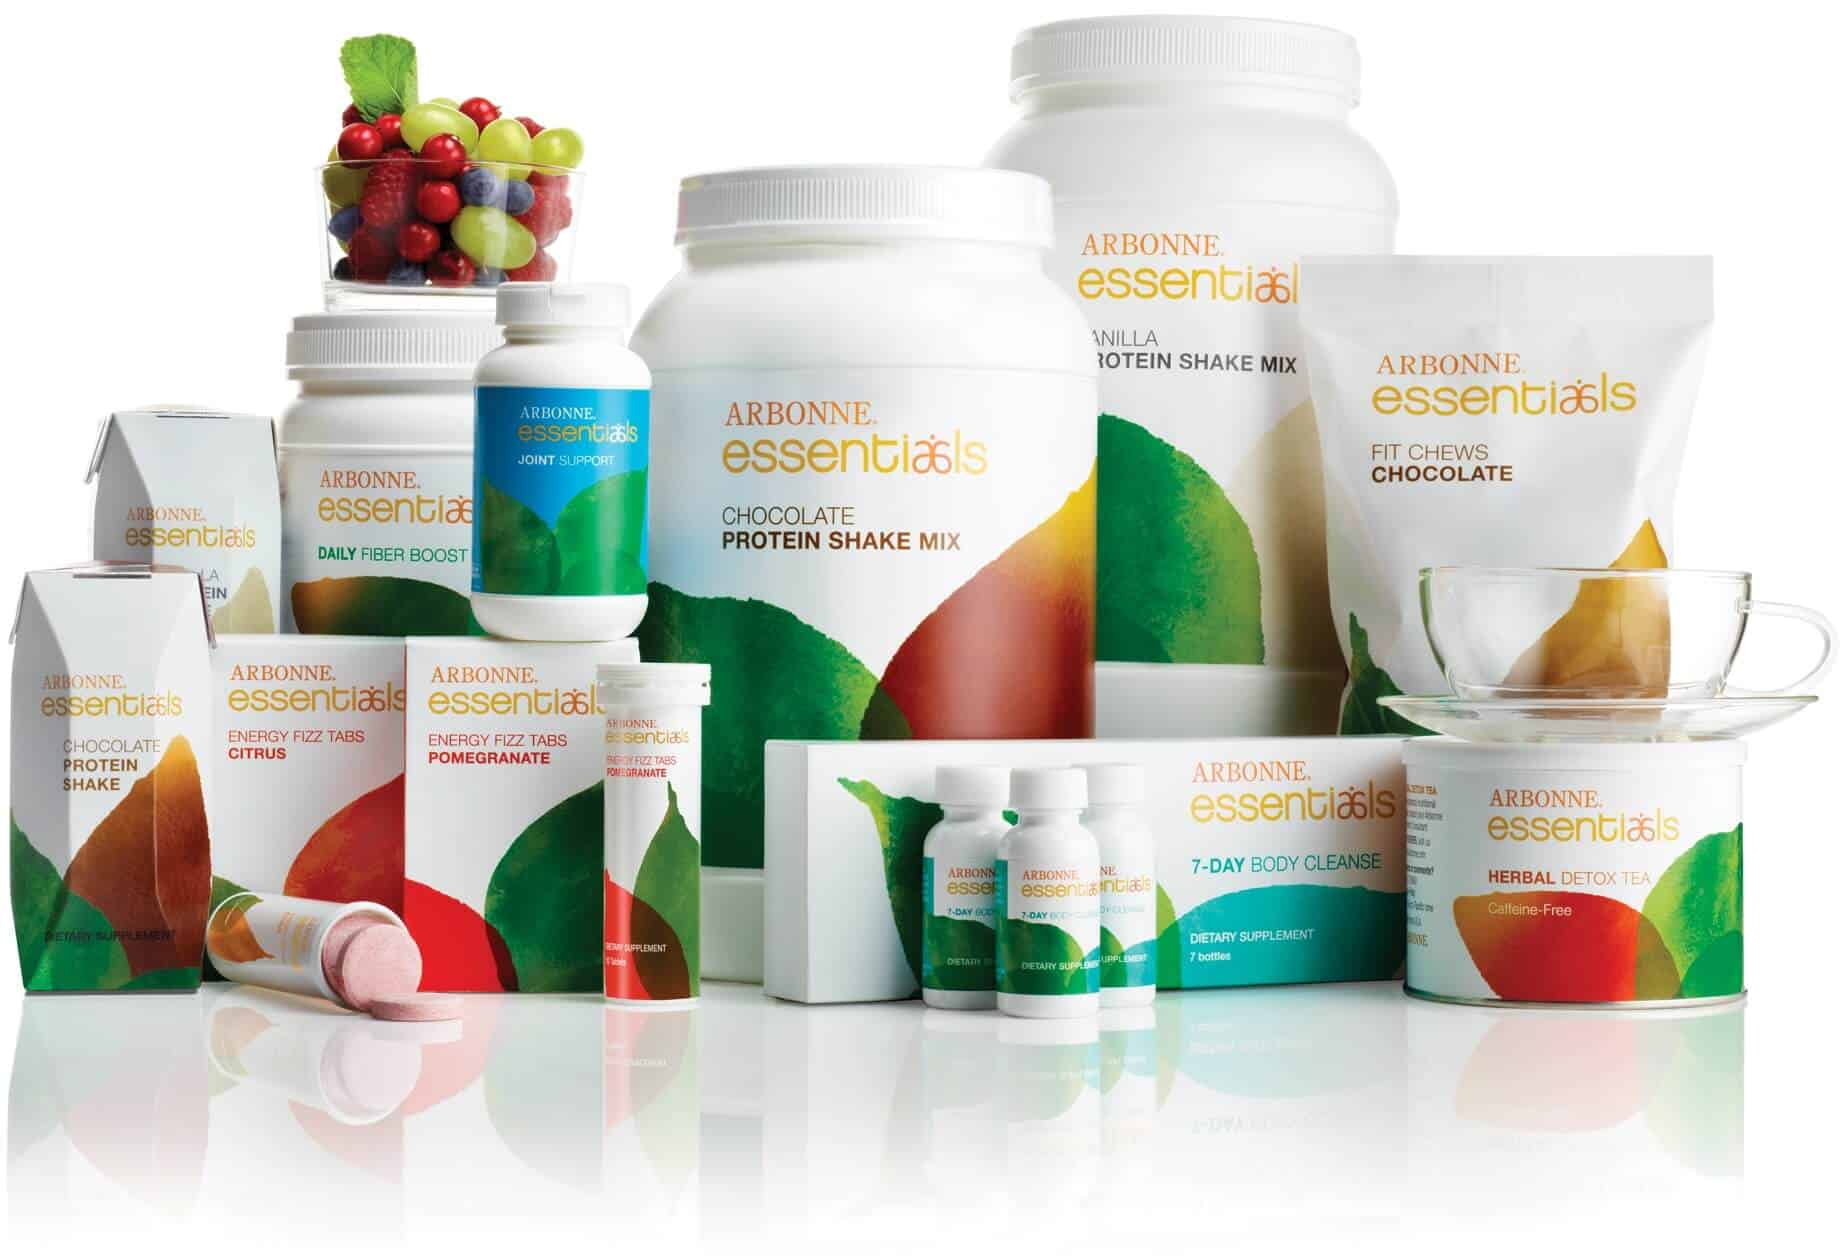 Arbonne Weight Loss Program Review (UPDATE: 2019) | 6 Things You Need to Know